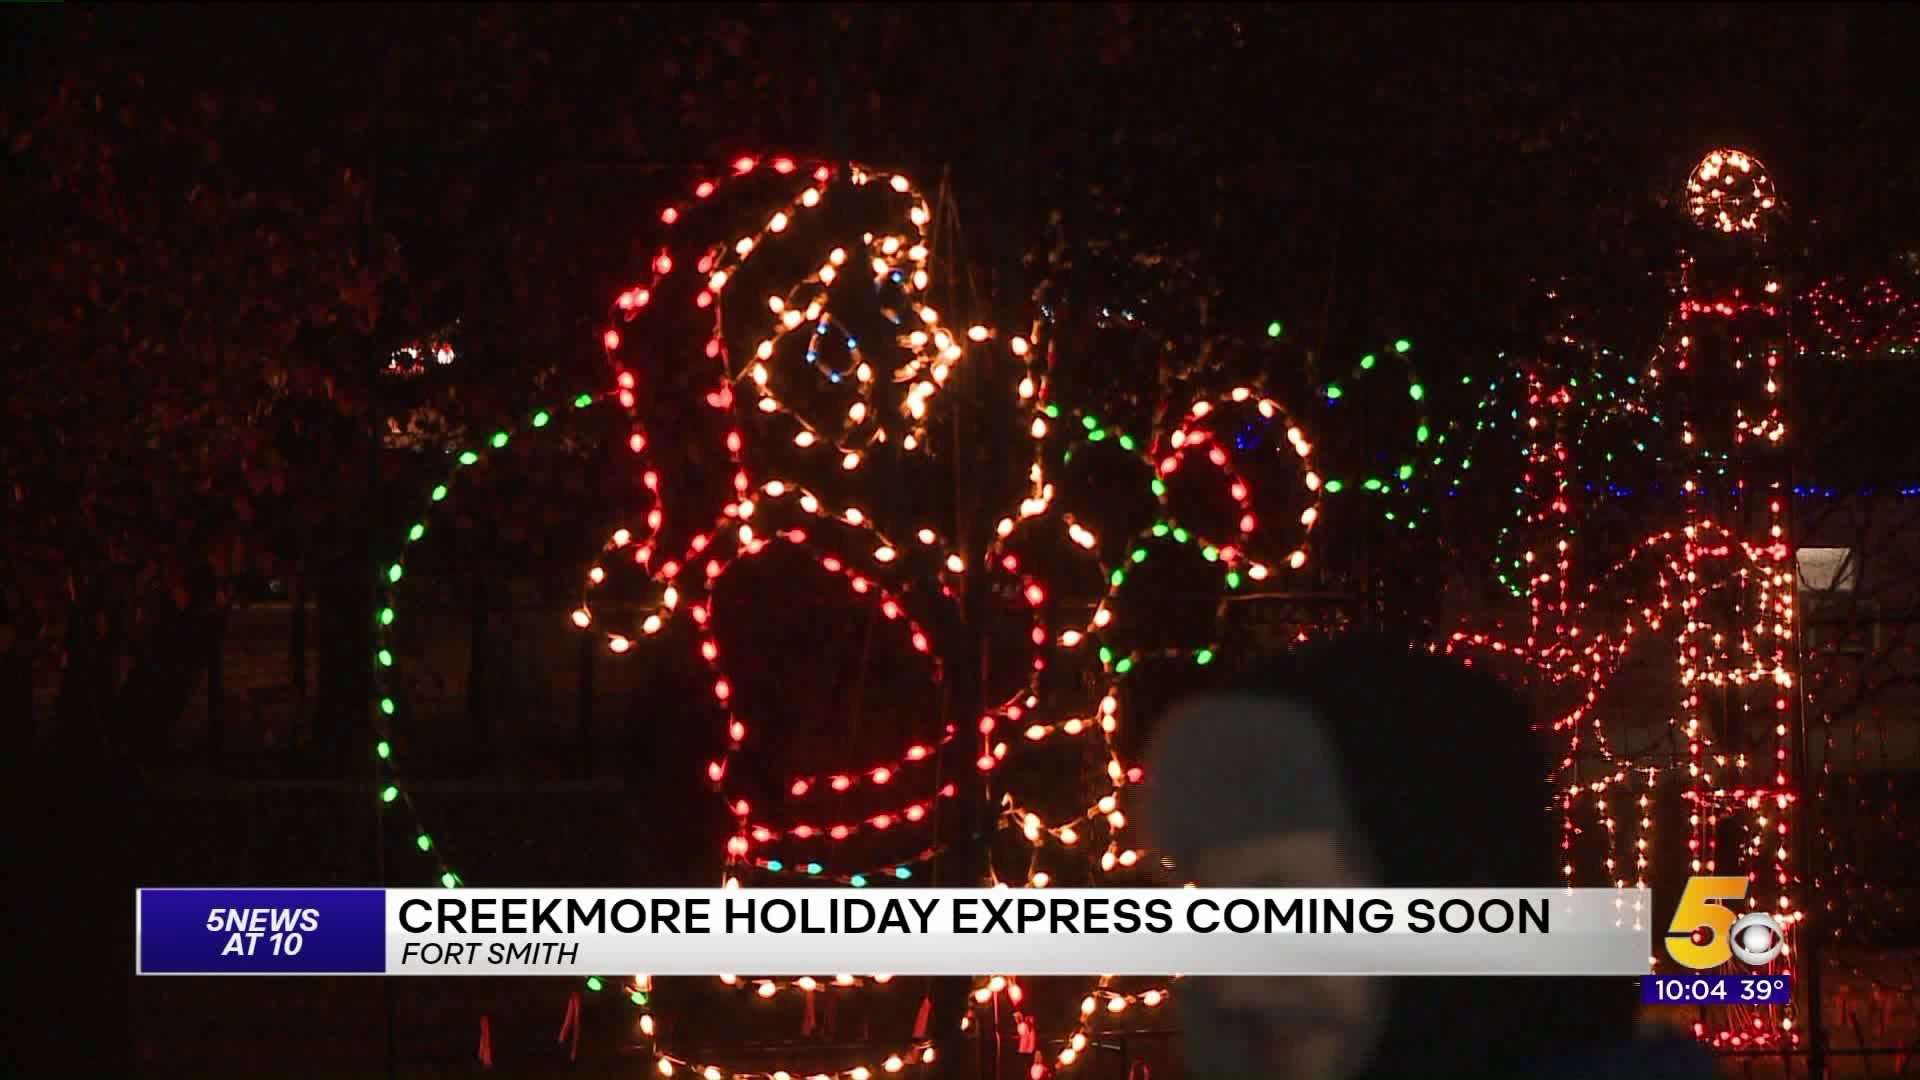 Fort Smith Christmas Lights 2020 Holiday Celebrations Where You Live For The 2019 Season